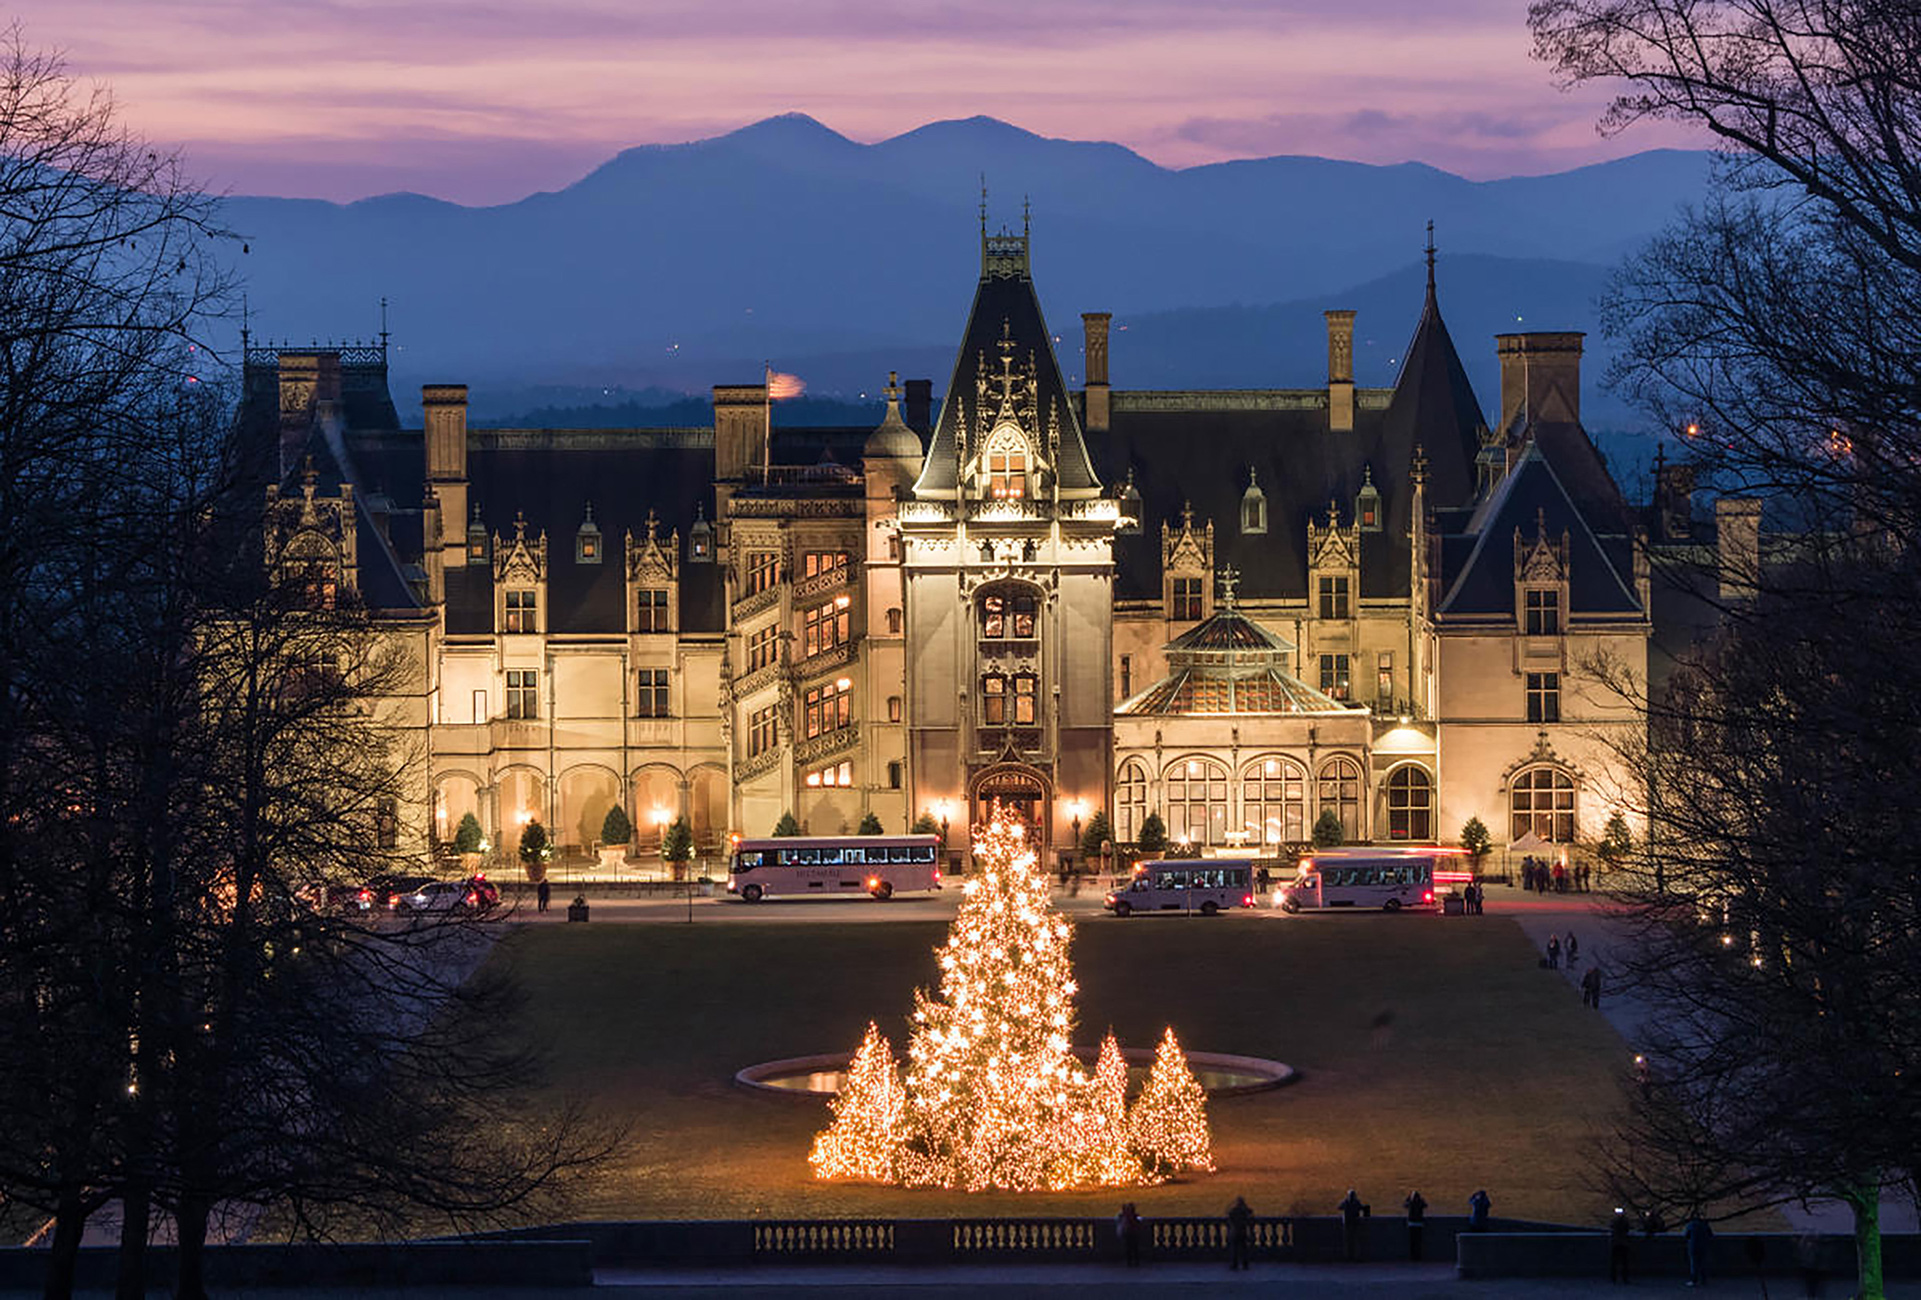 The Biltmore at night